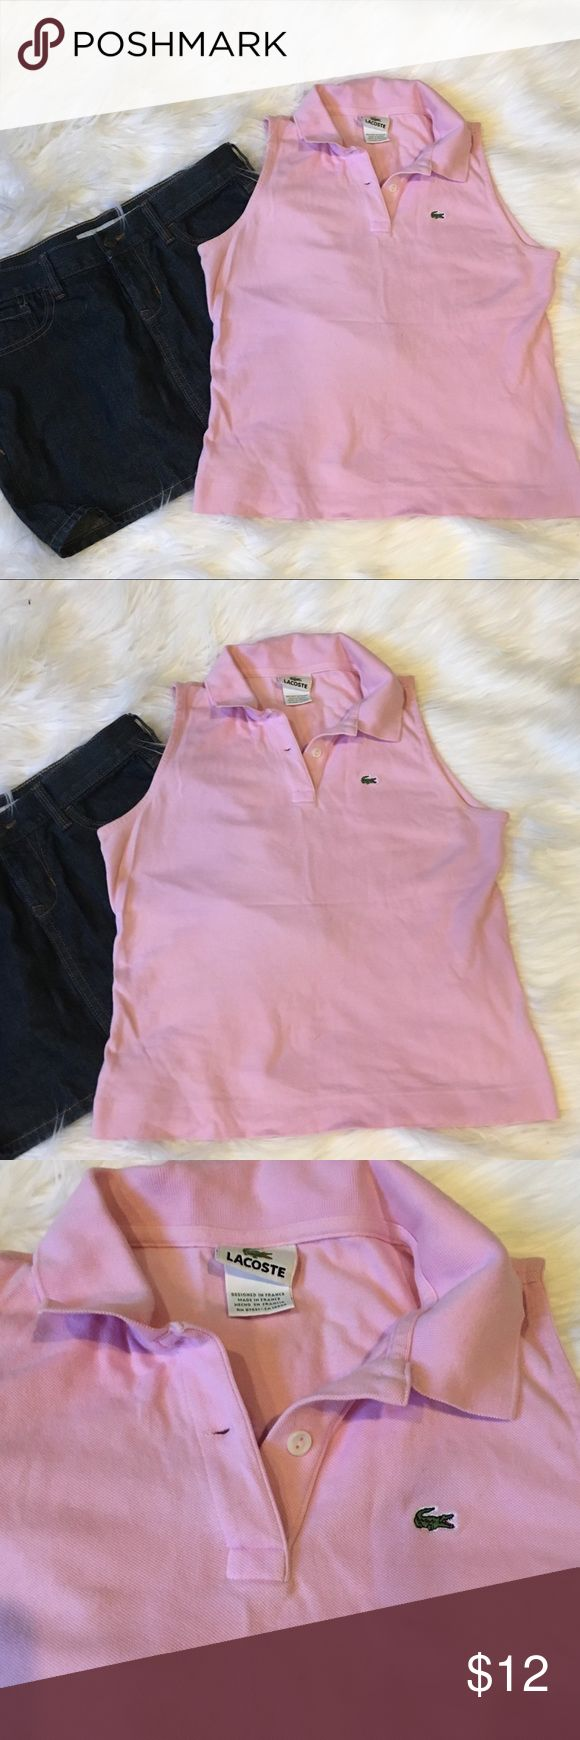 Lacoste Pink Sleeveless Polo Lacoste Light Pink Sleeveless  Polo in good pre-loved condition. It has two buttons & is Sleeveless with signature  alligator emblem on chest. Size 44, but I'm in opinion it fits like similar to US Size 6. Let me know if you want additional photos or measurements as this style tends to run on the shorter side. Lacoste Tops Button Down Shirts